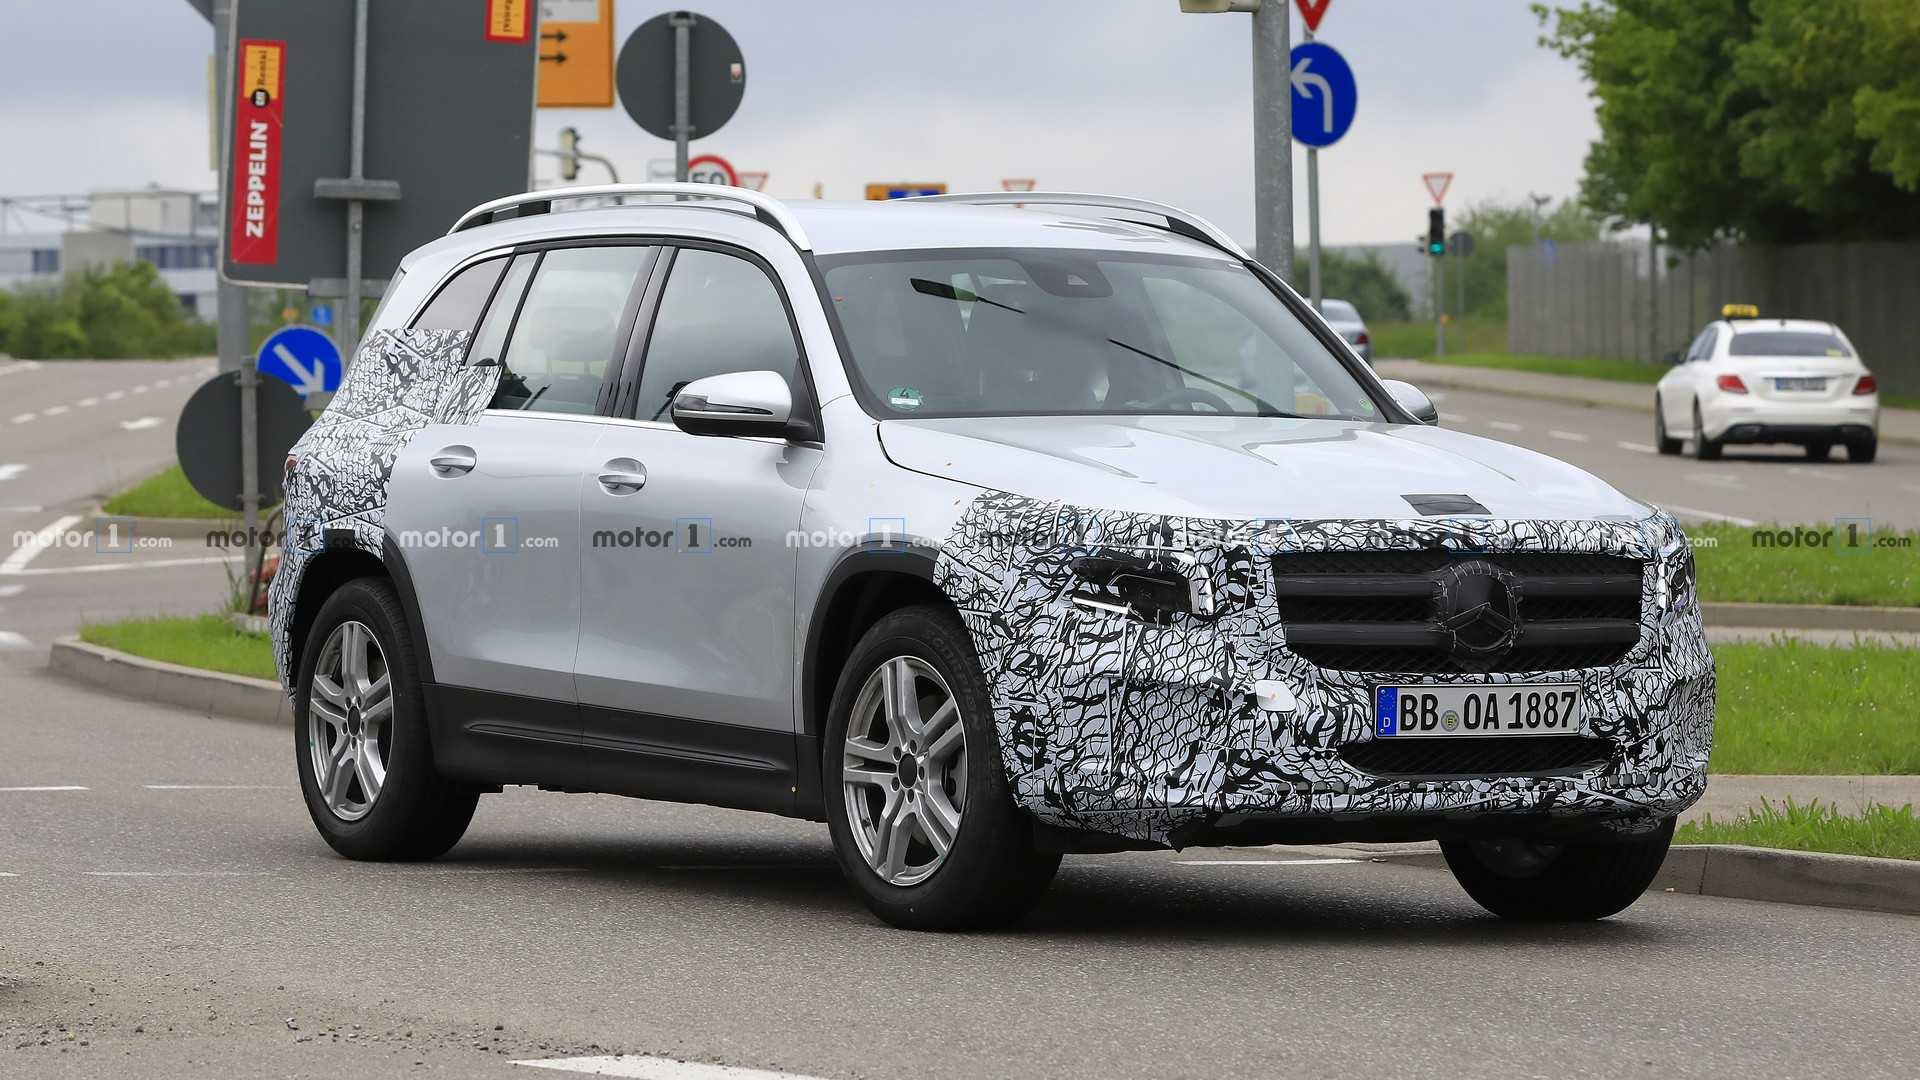 2020 Mercedes GLB Our Best Look Yet Thanks To New Spy Shots 1920x1080